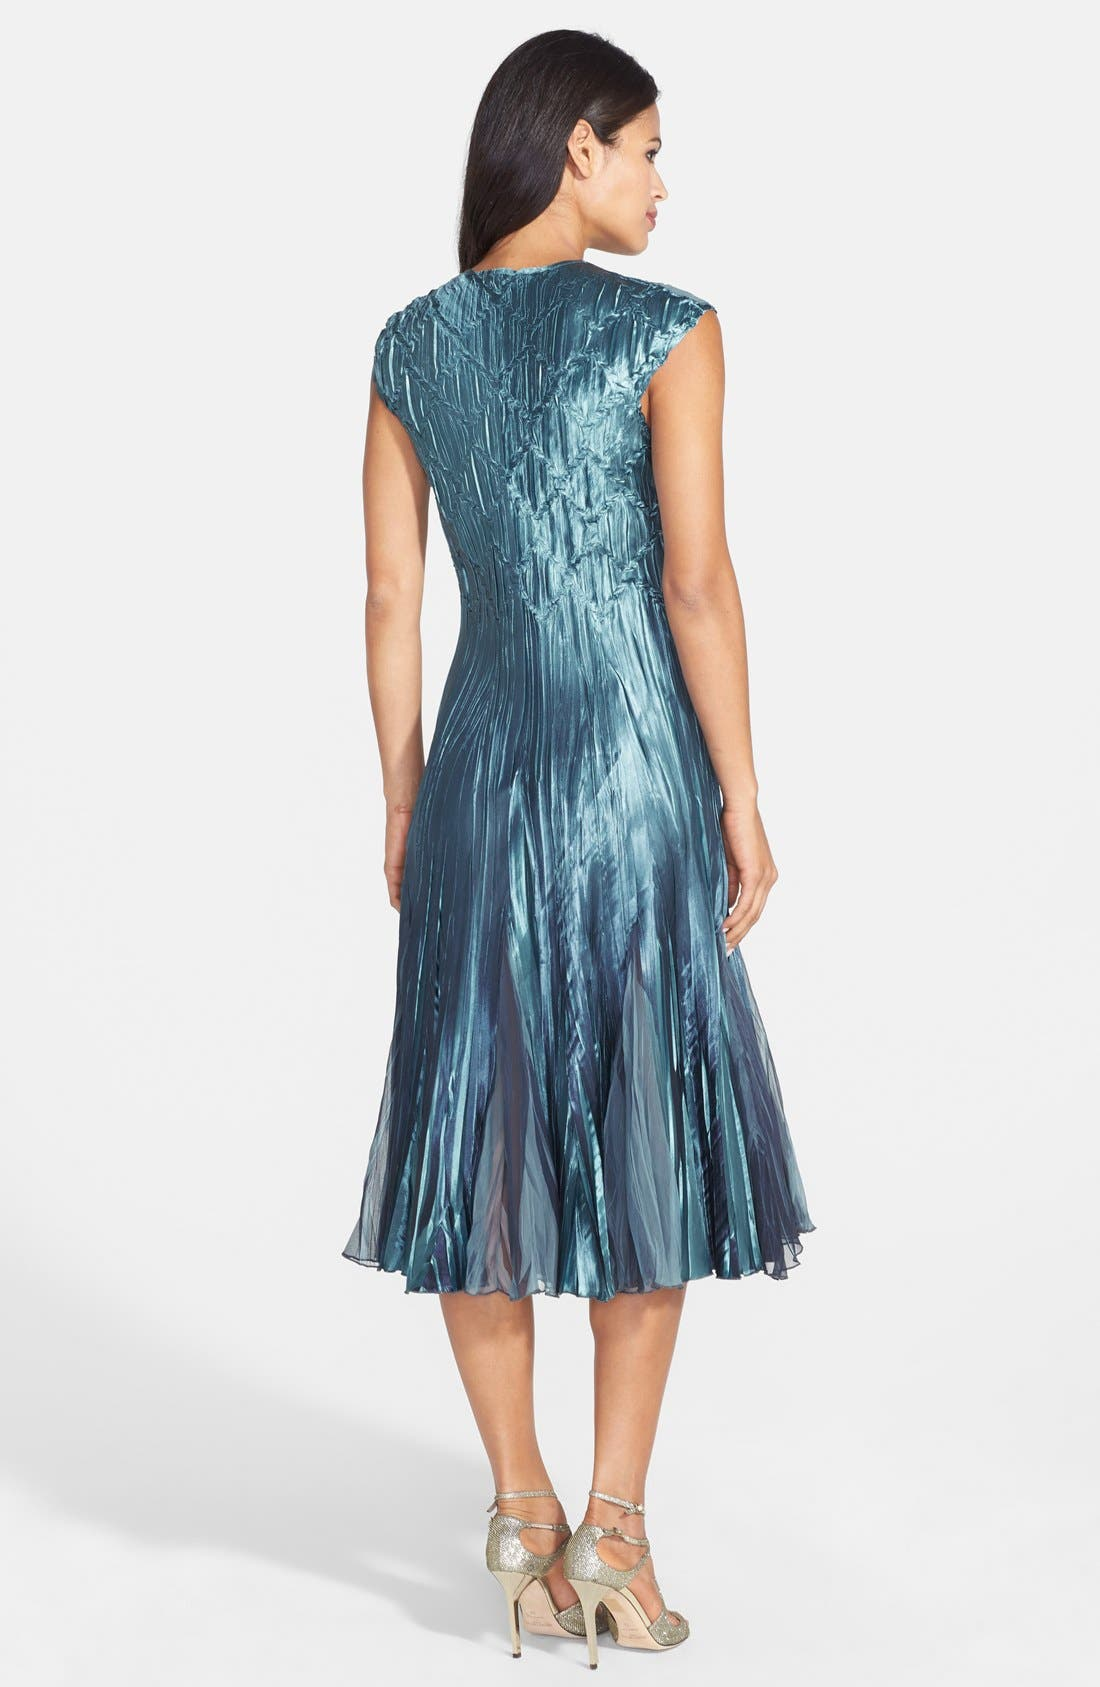 Embellished Pleat Mixed Media Dress with Jacket,                             Alternate thumbnail 8, color,                             SILVER BLUE OMBRE